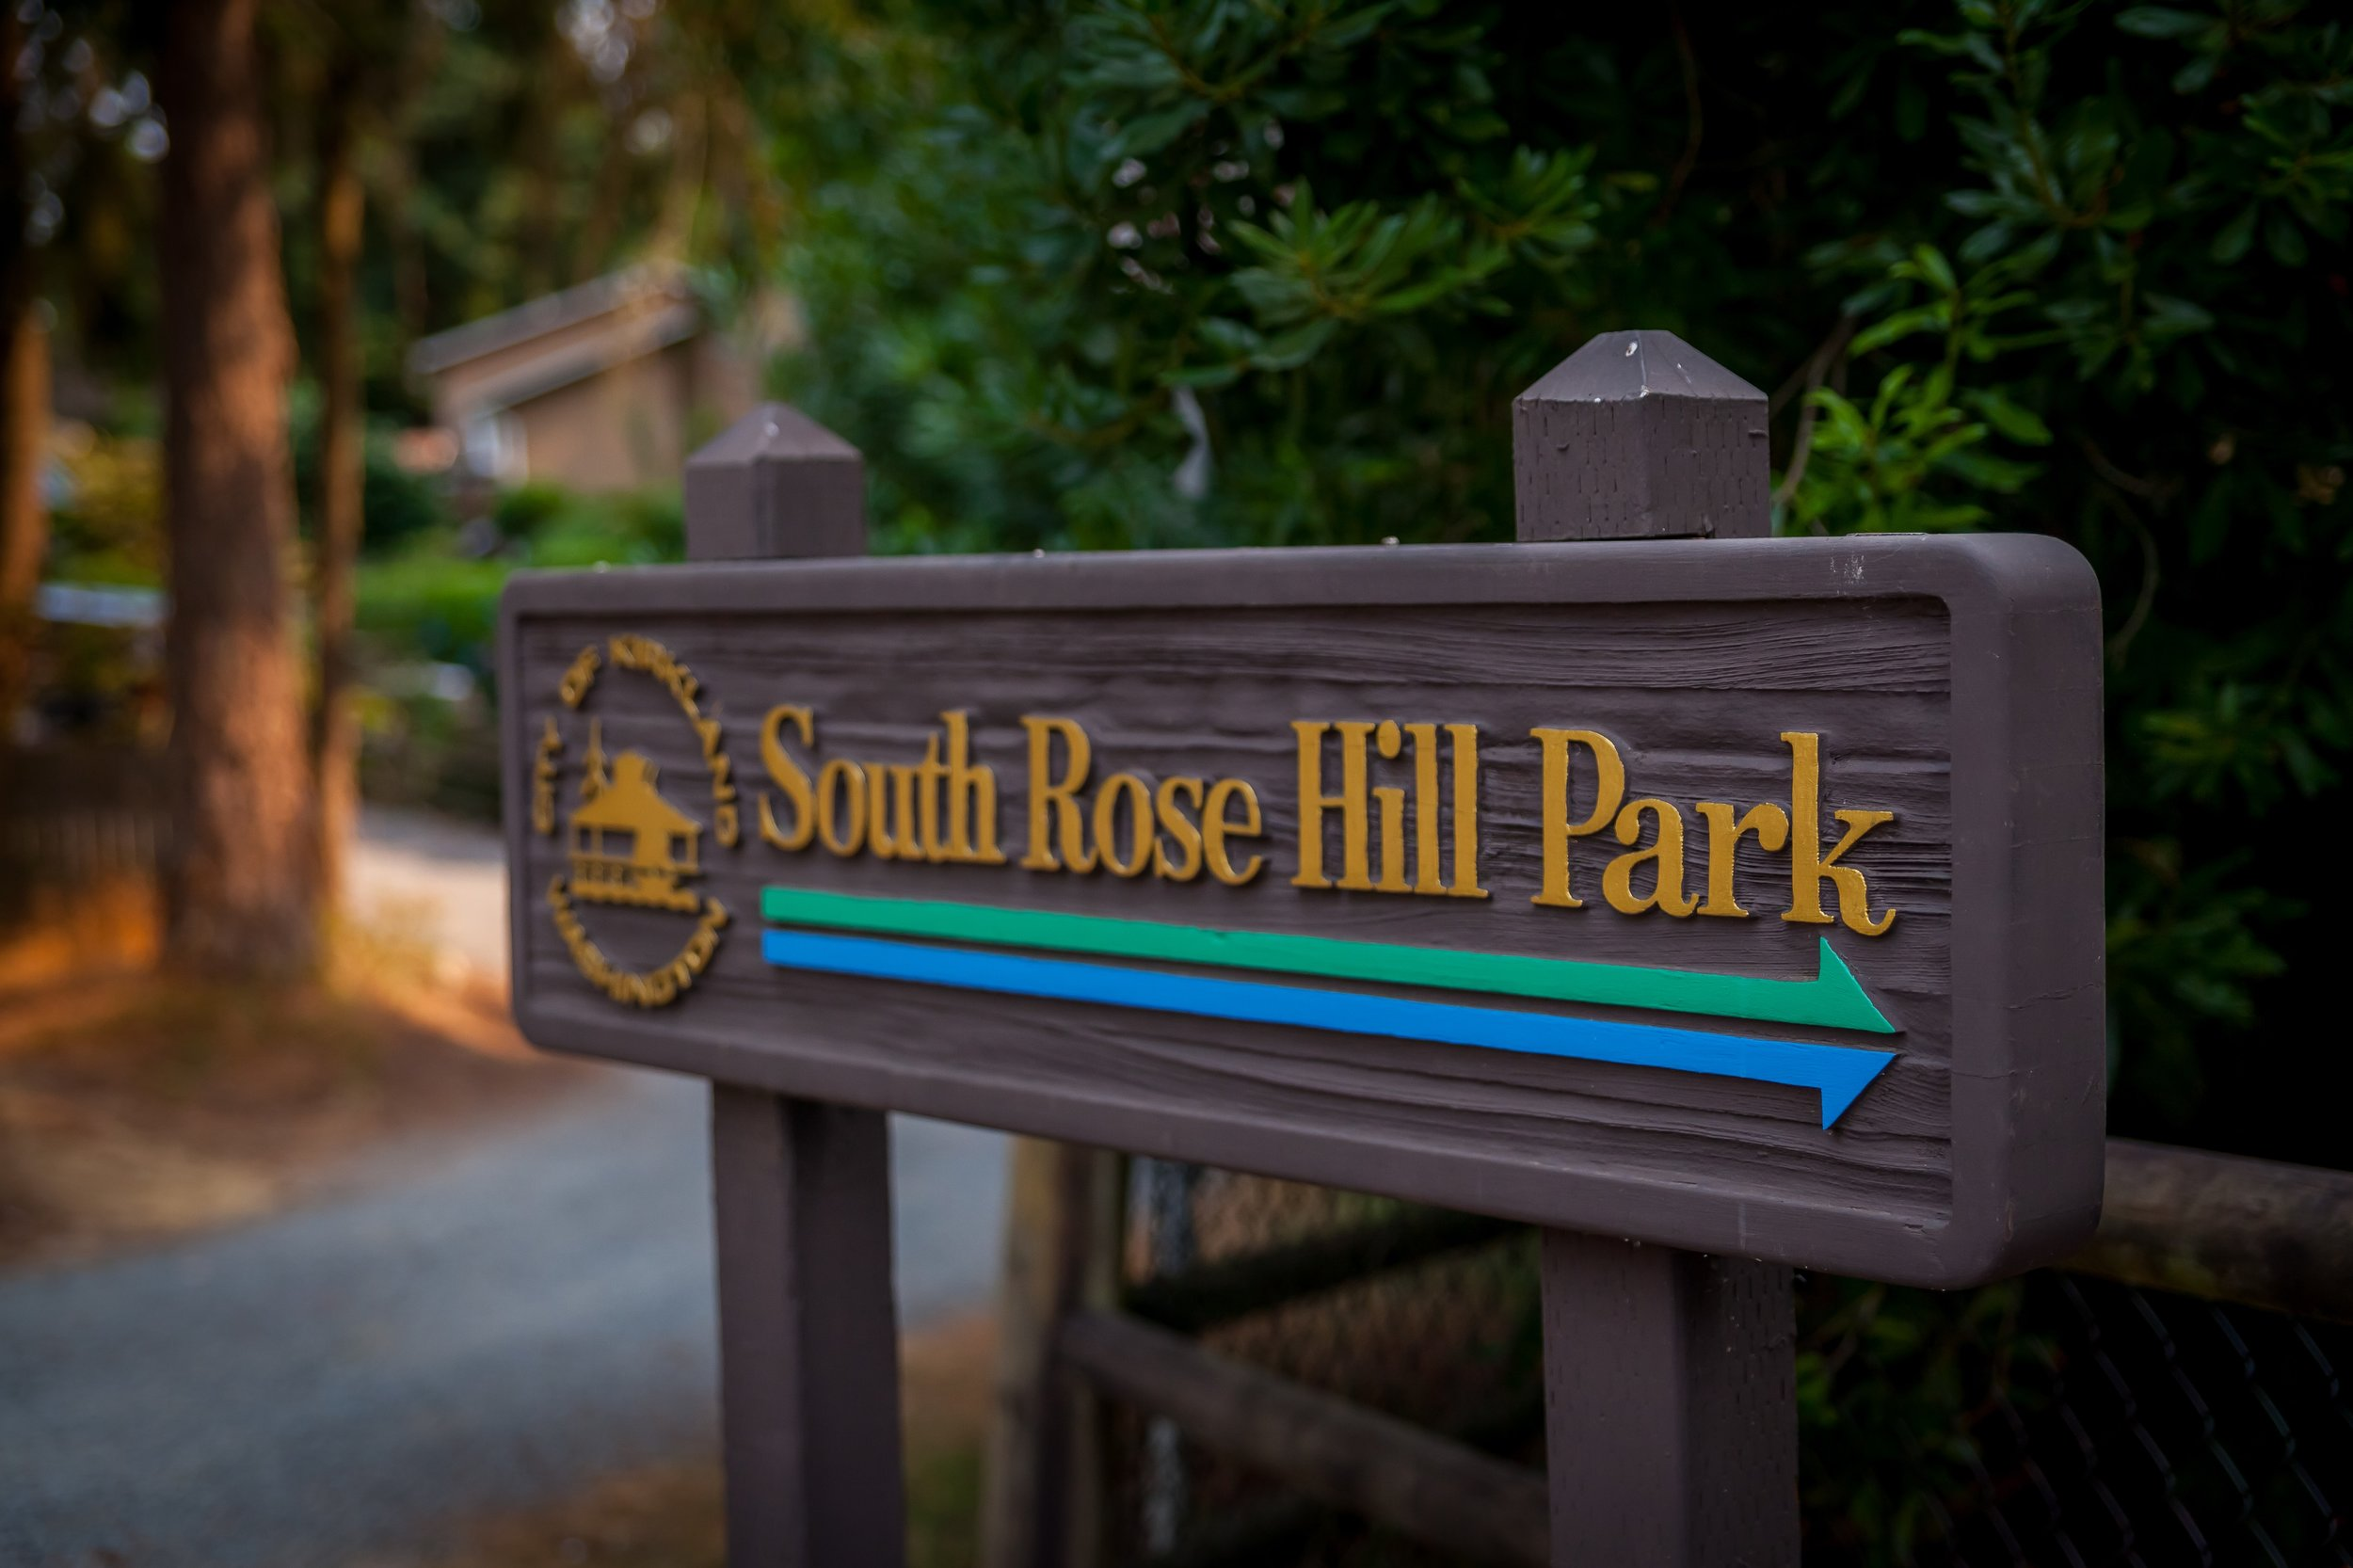 SOUTH ROSE HILL